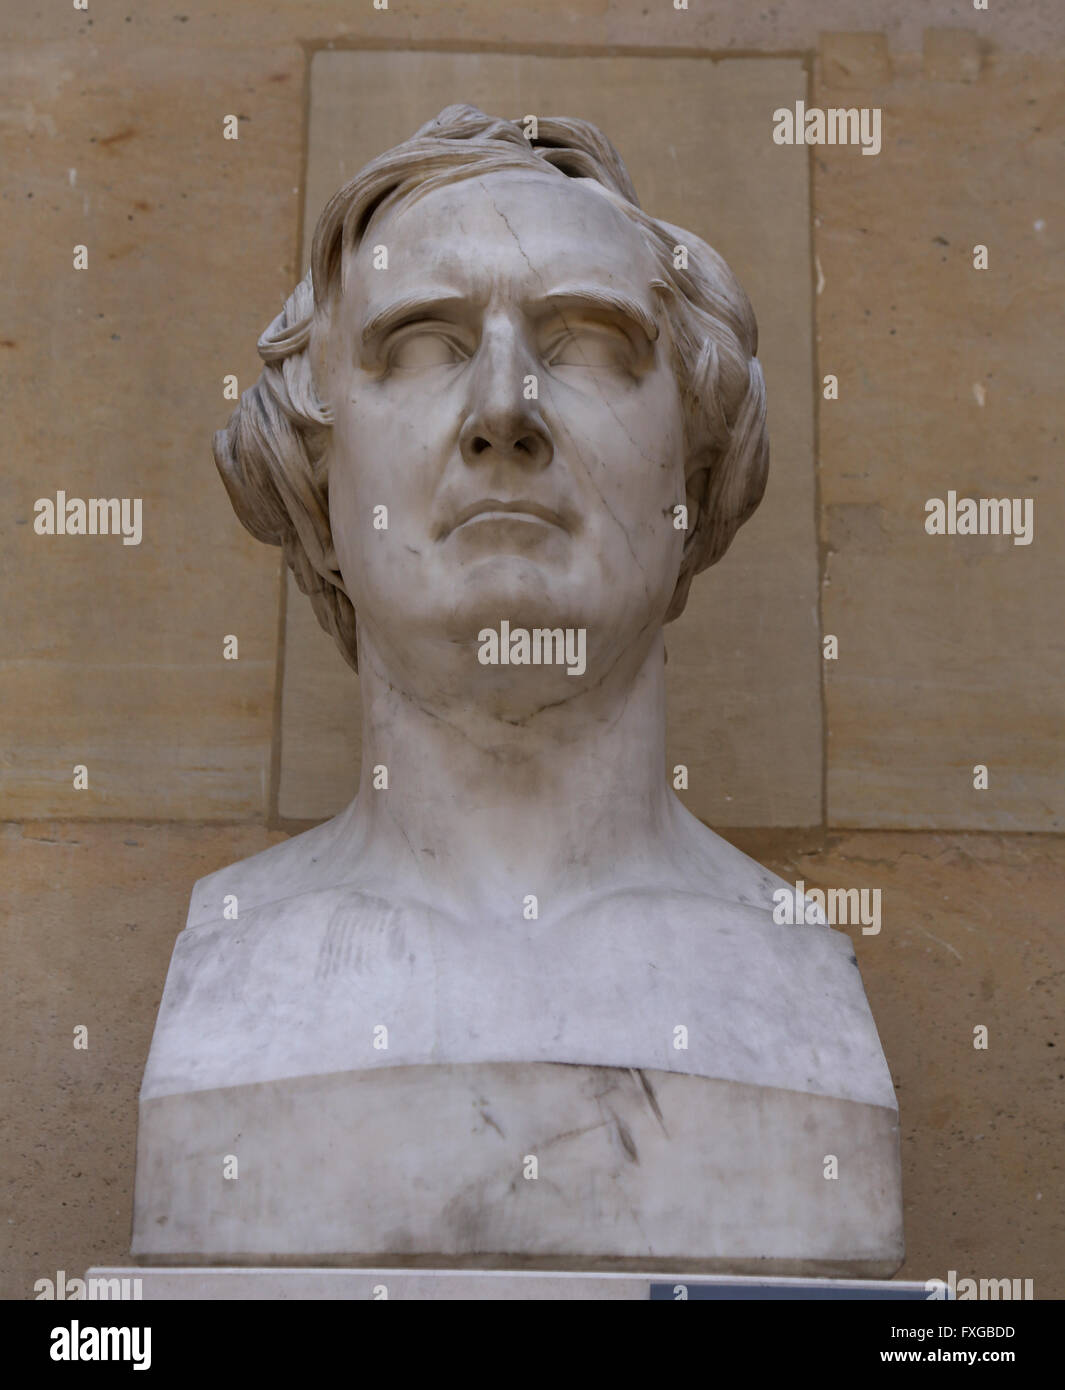 Francois Arago (1786-1853). French mathematician, physicist, and politician. Bust, marble, 1830. David d'Angers - Stock Image